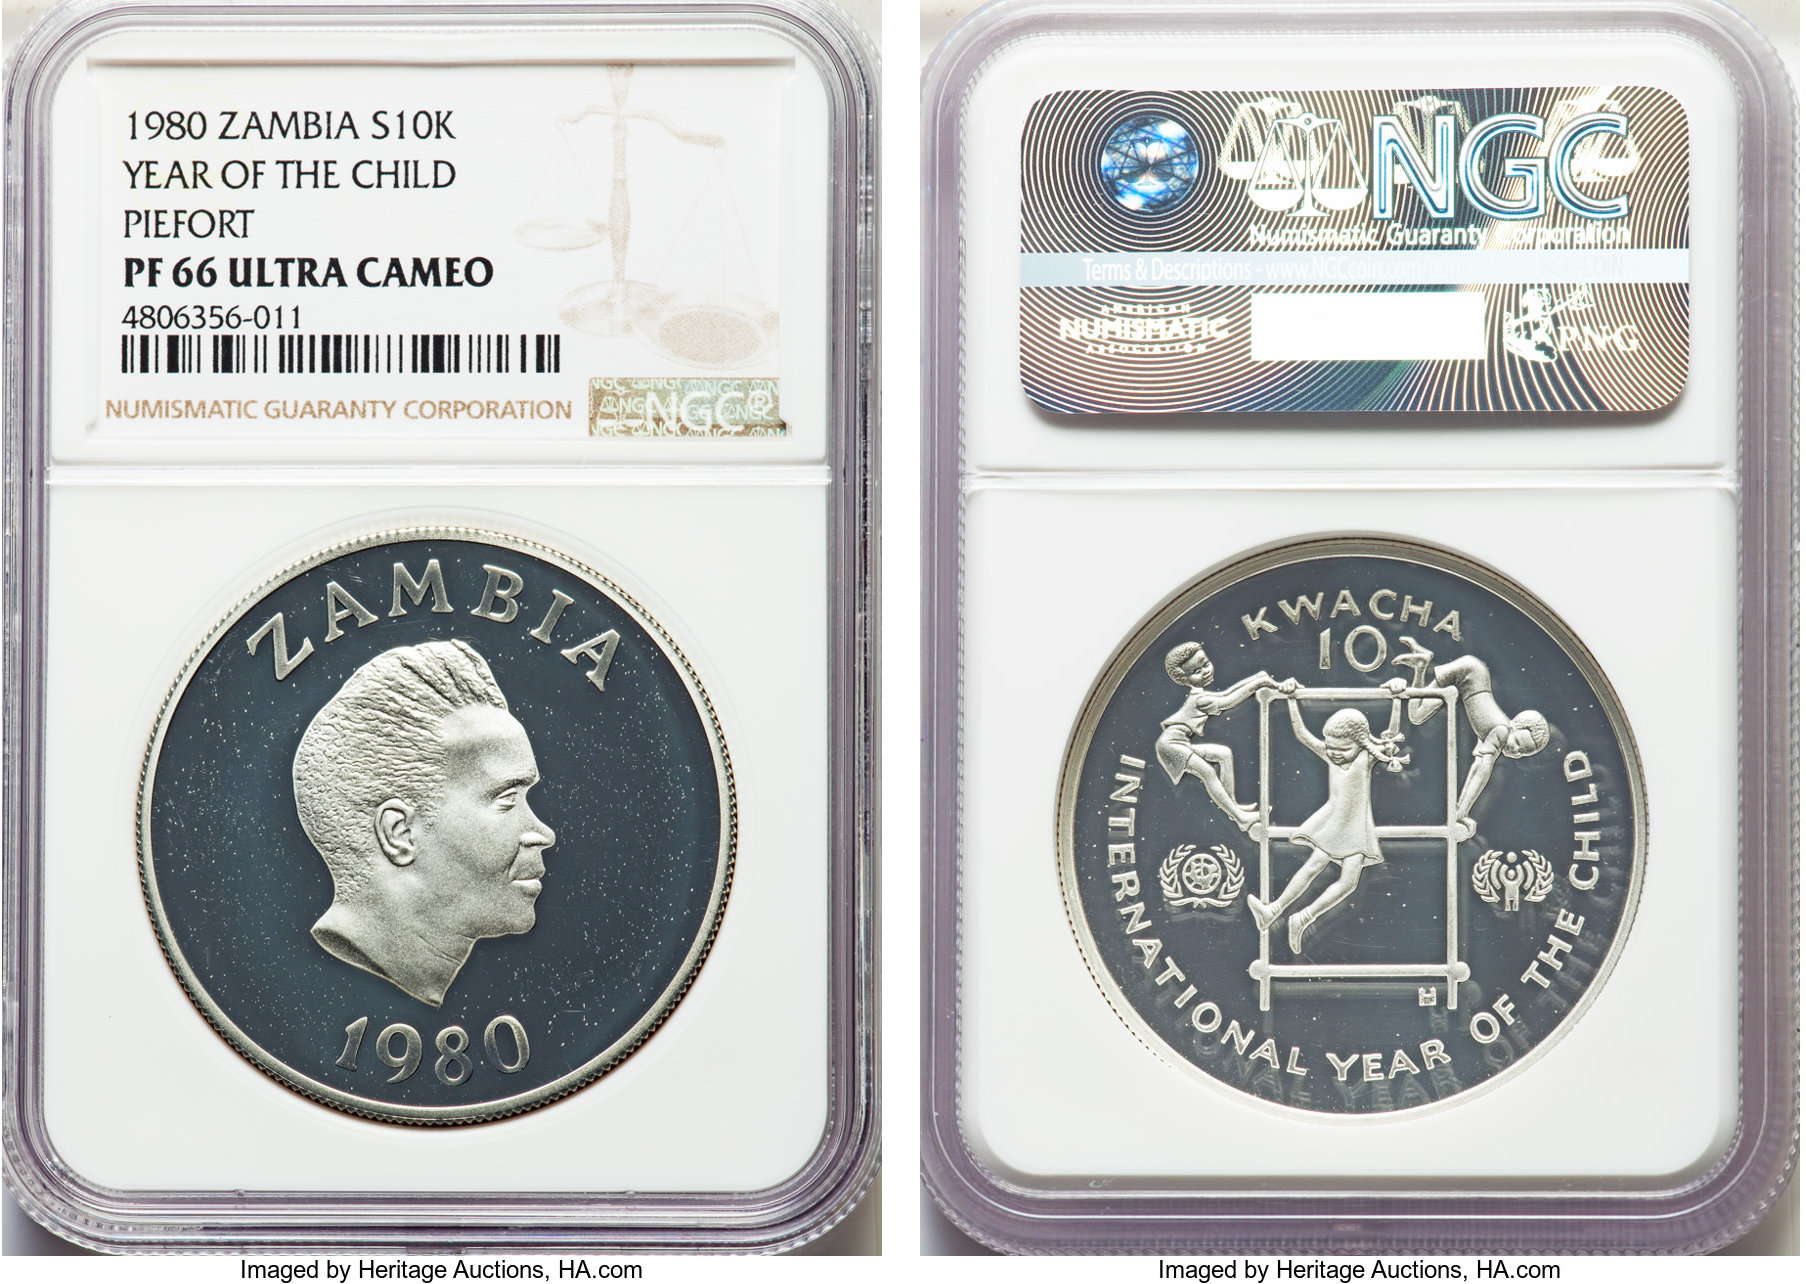 Coins: World 2004 Zambia Cuni And 2001 Zambia Silver Coin